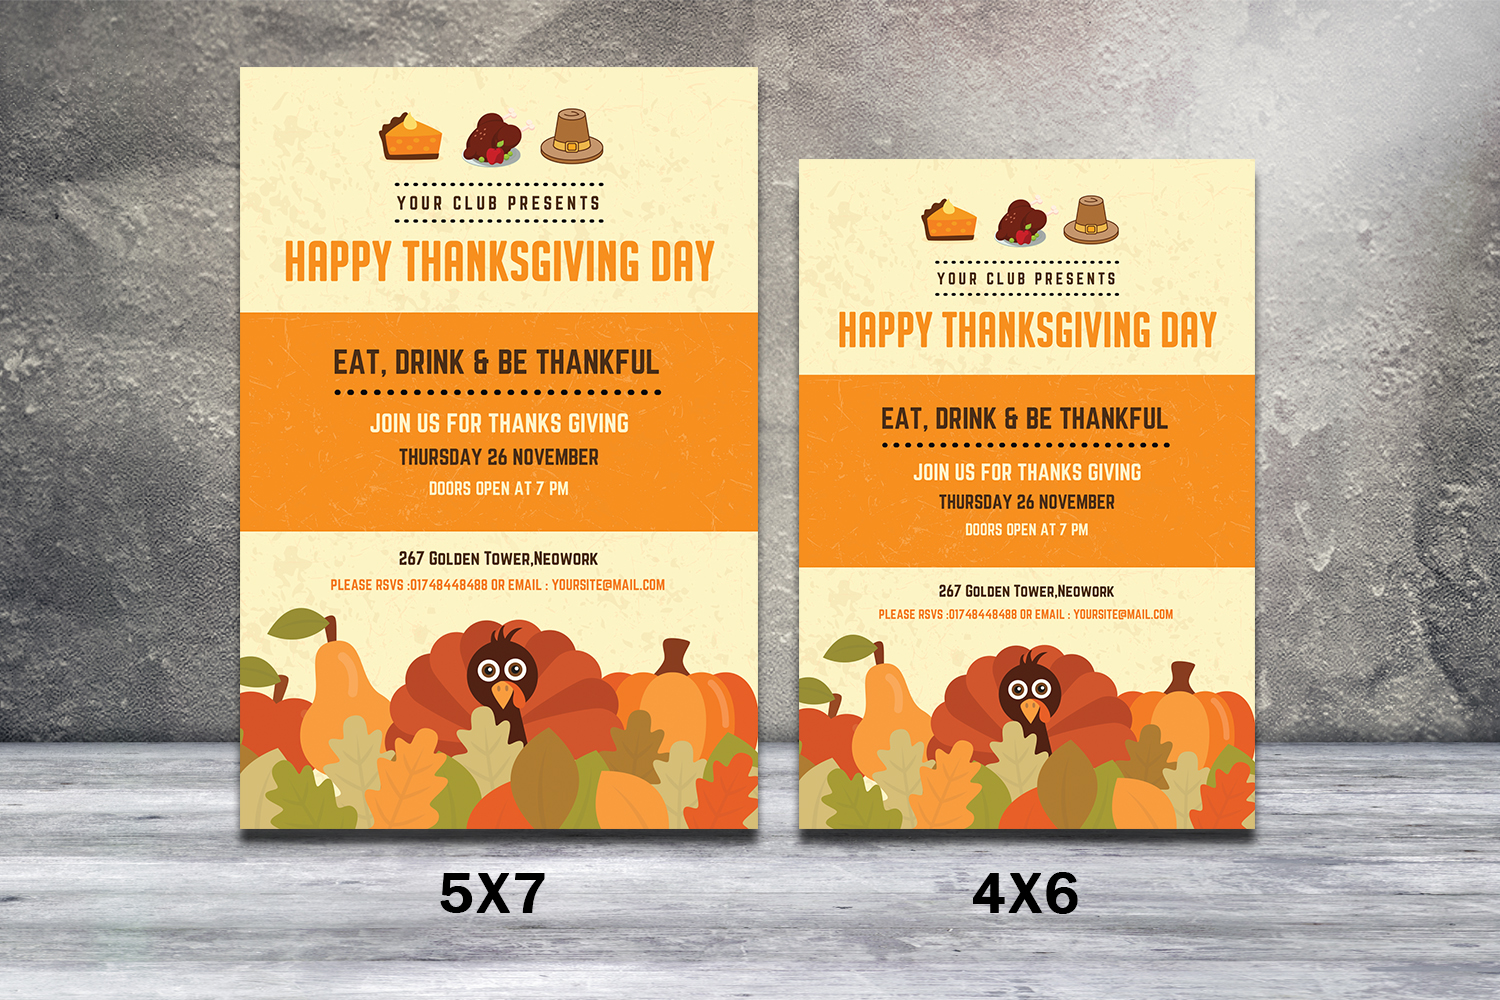 Thanksgiving Day Invitaion Flyer Graphic By Sistecbd Creative Fabrica